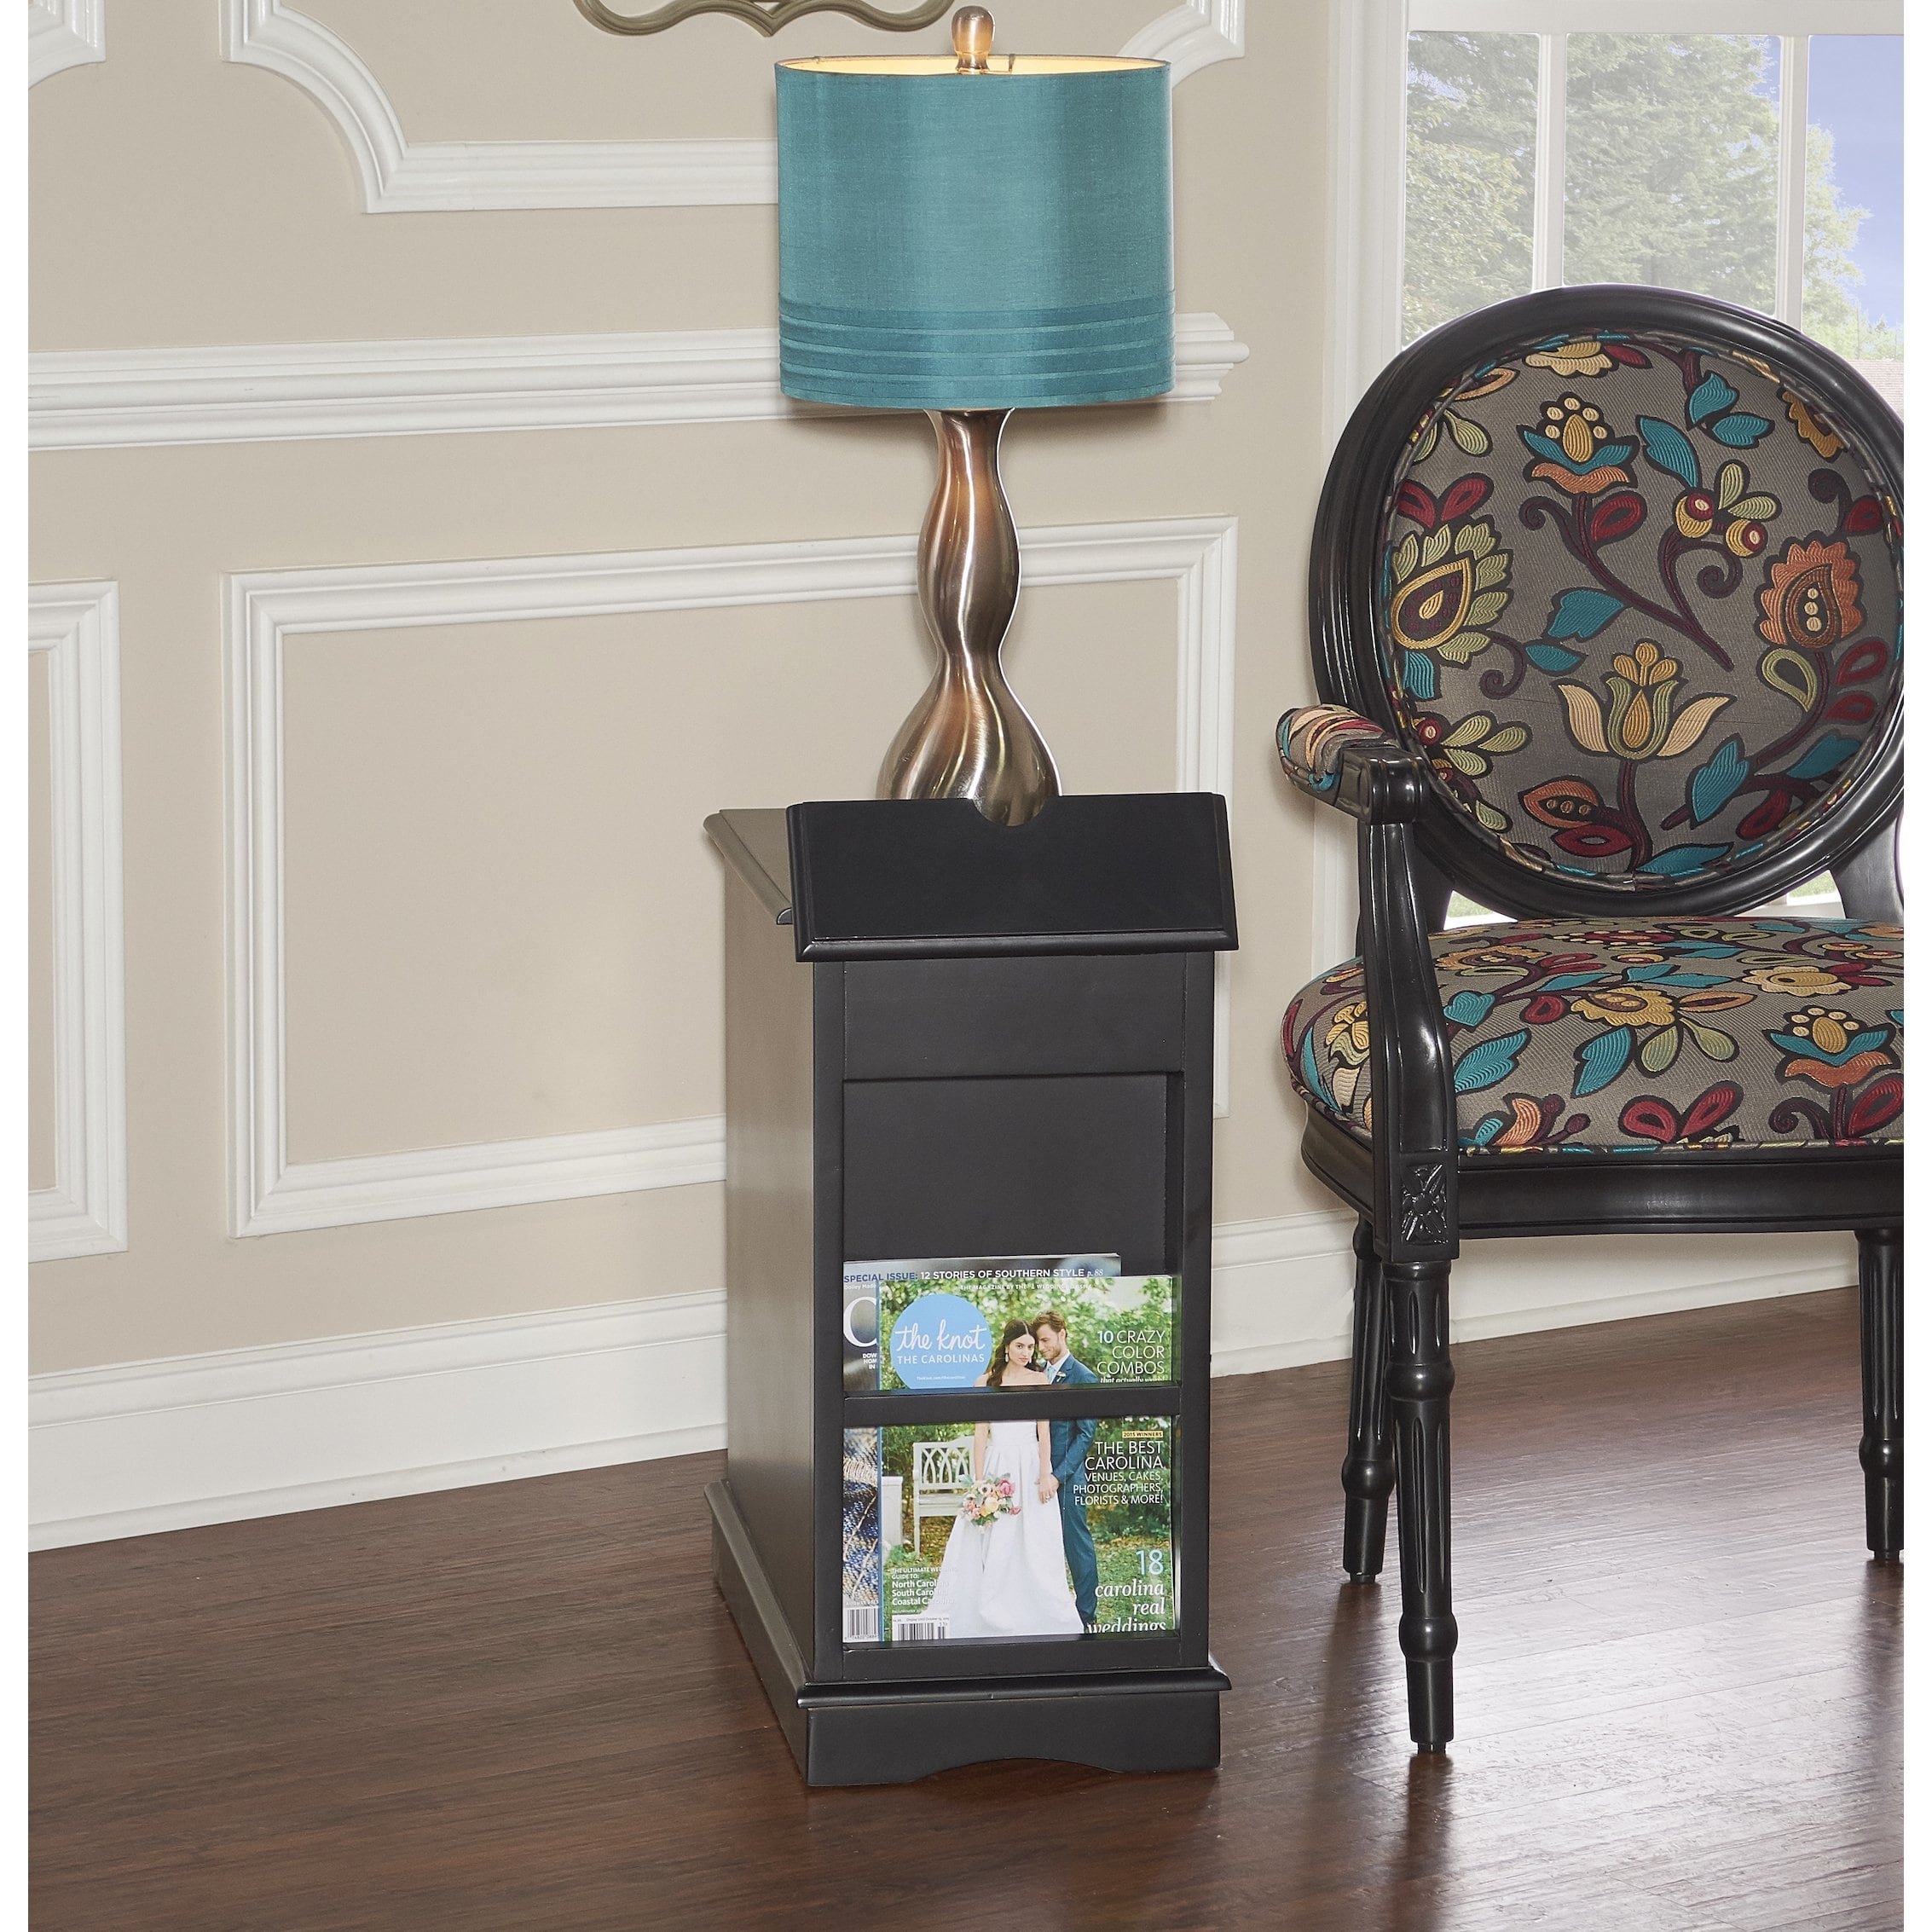 powell kford black accent table free shipping today small outdoor storage box dining and chairs tiffany pond lily lamp trailer furniture piece garden set ethan allen round end